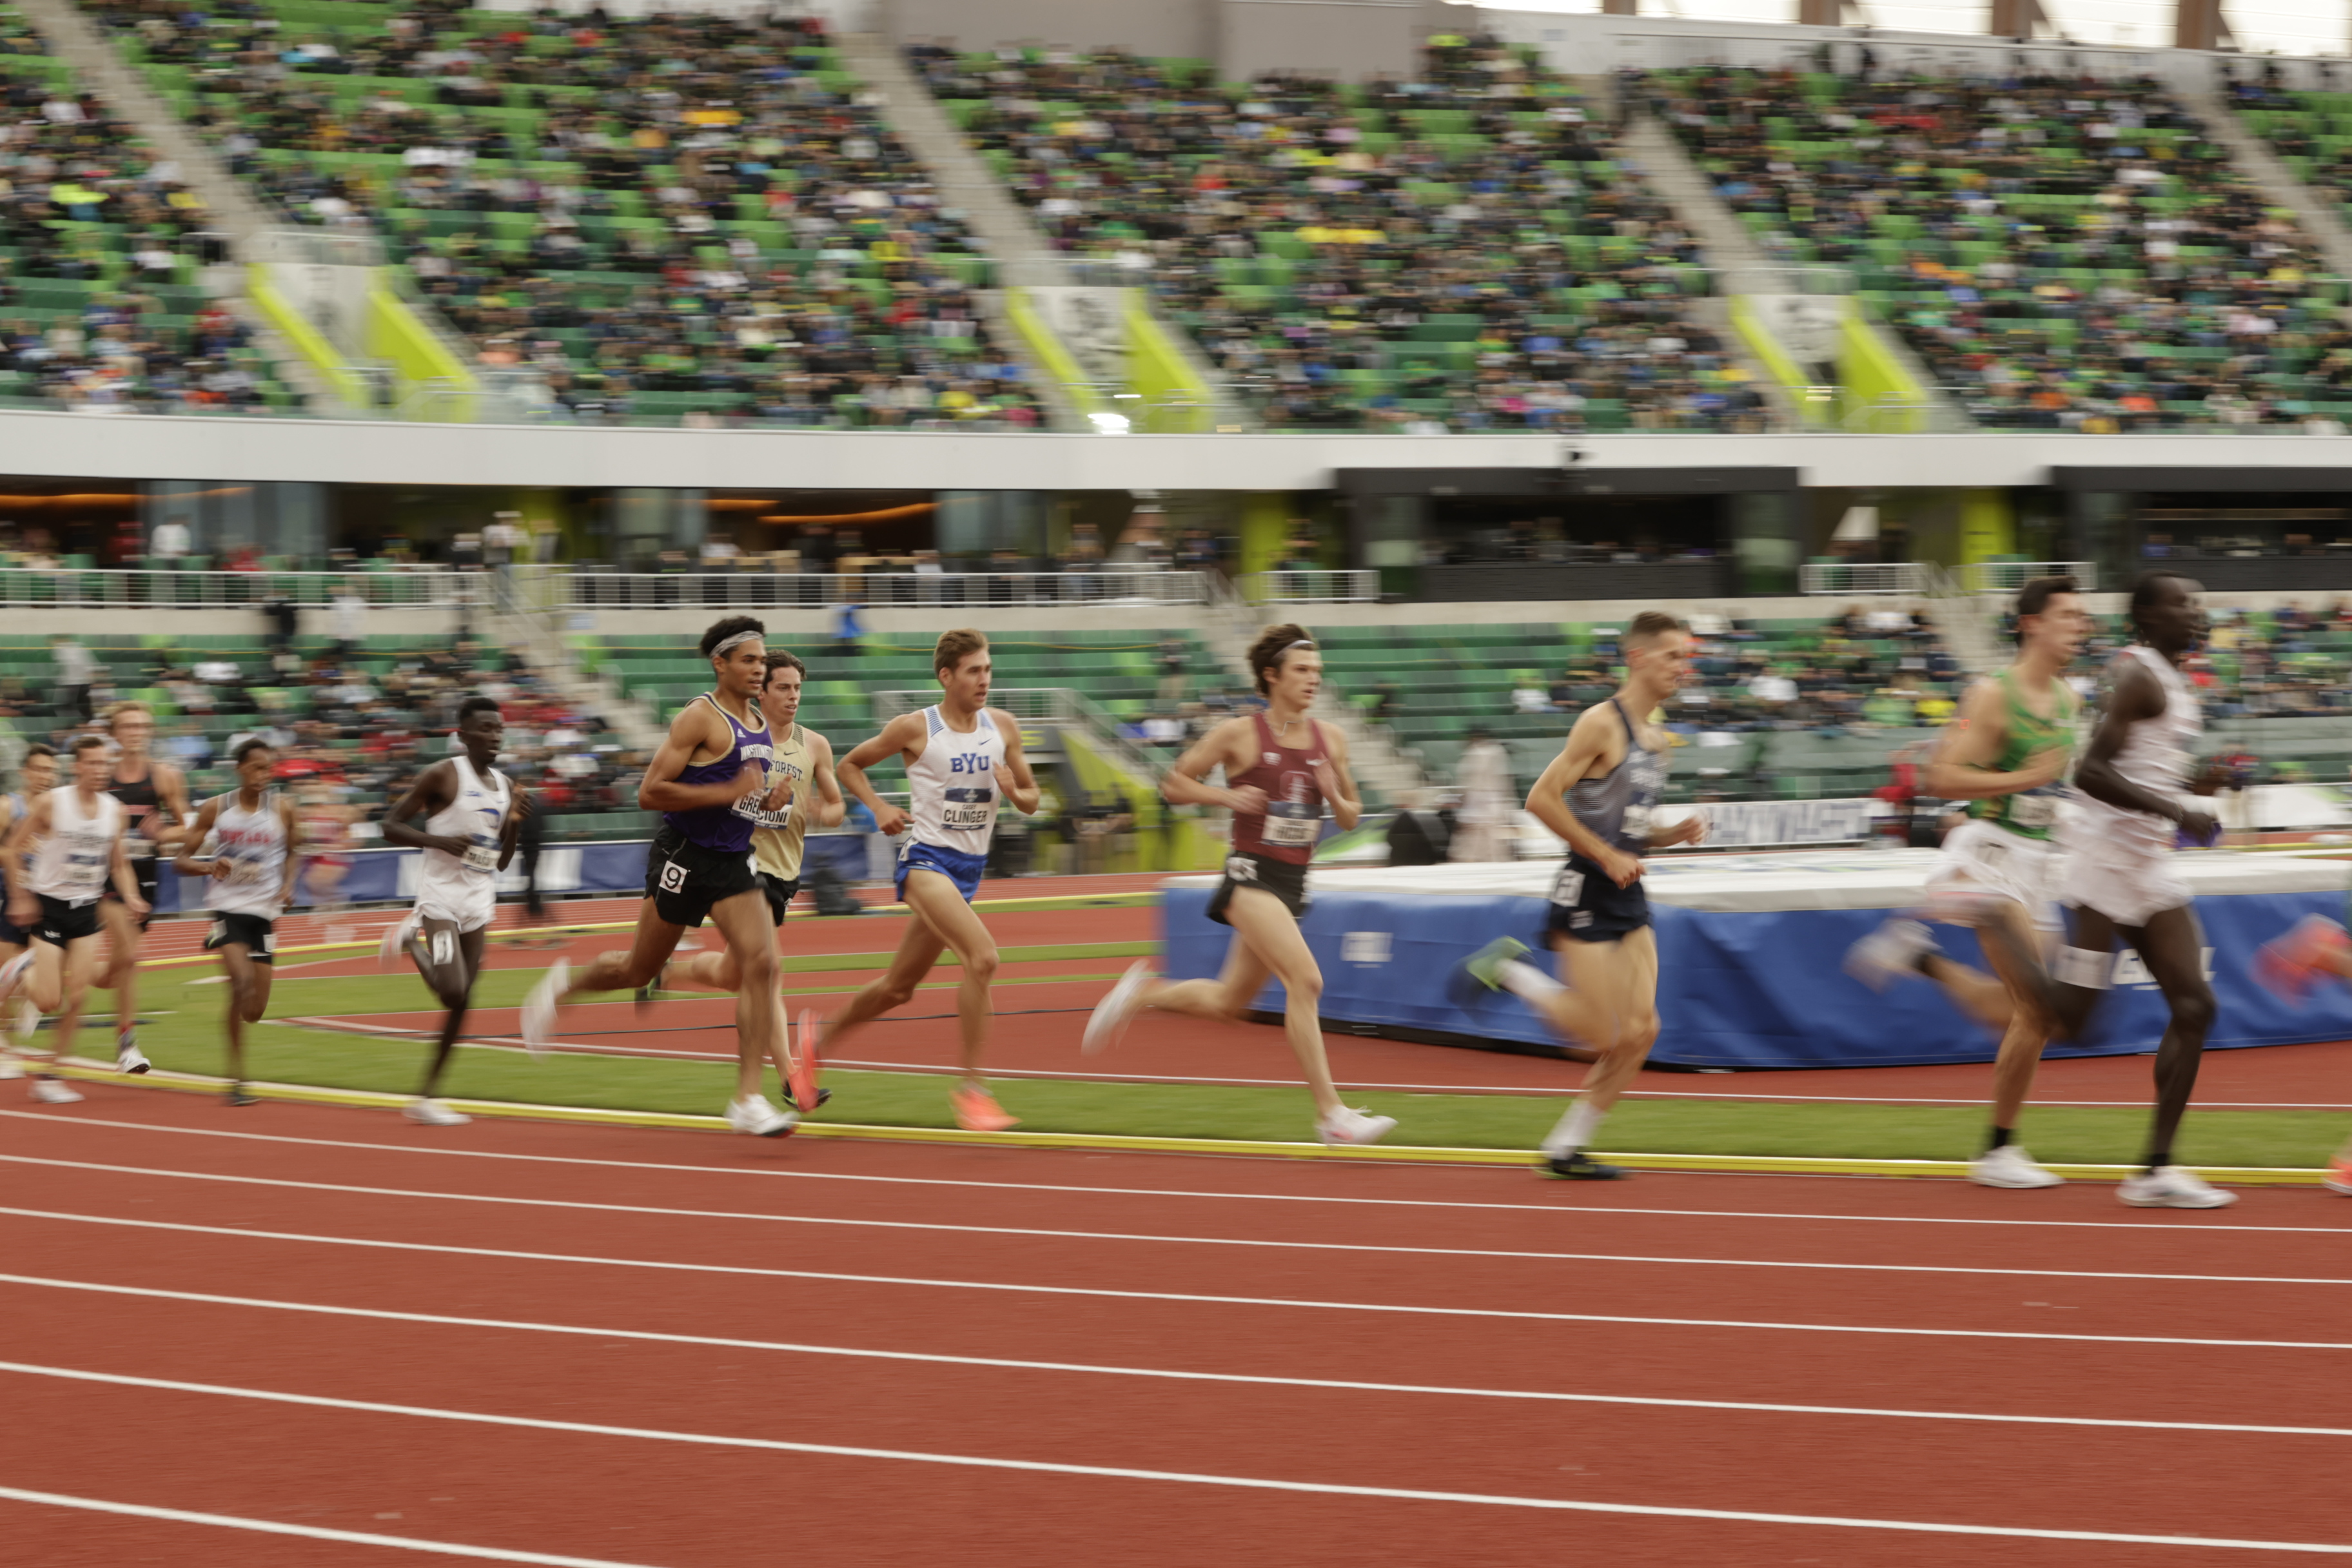 Runners compete during the NCAA Outdoor Track and Field Championships in Eugene, Oregon.